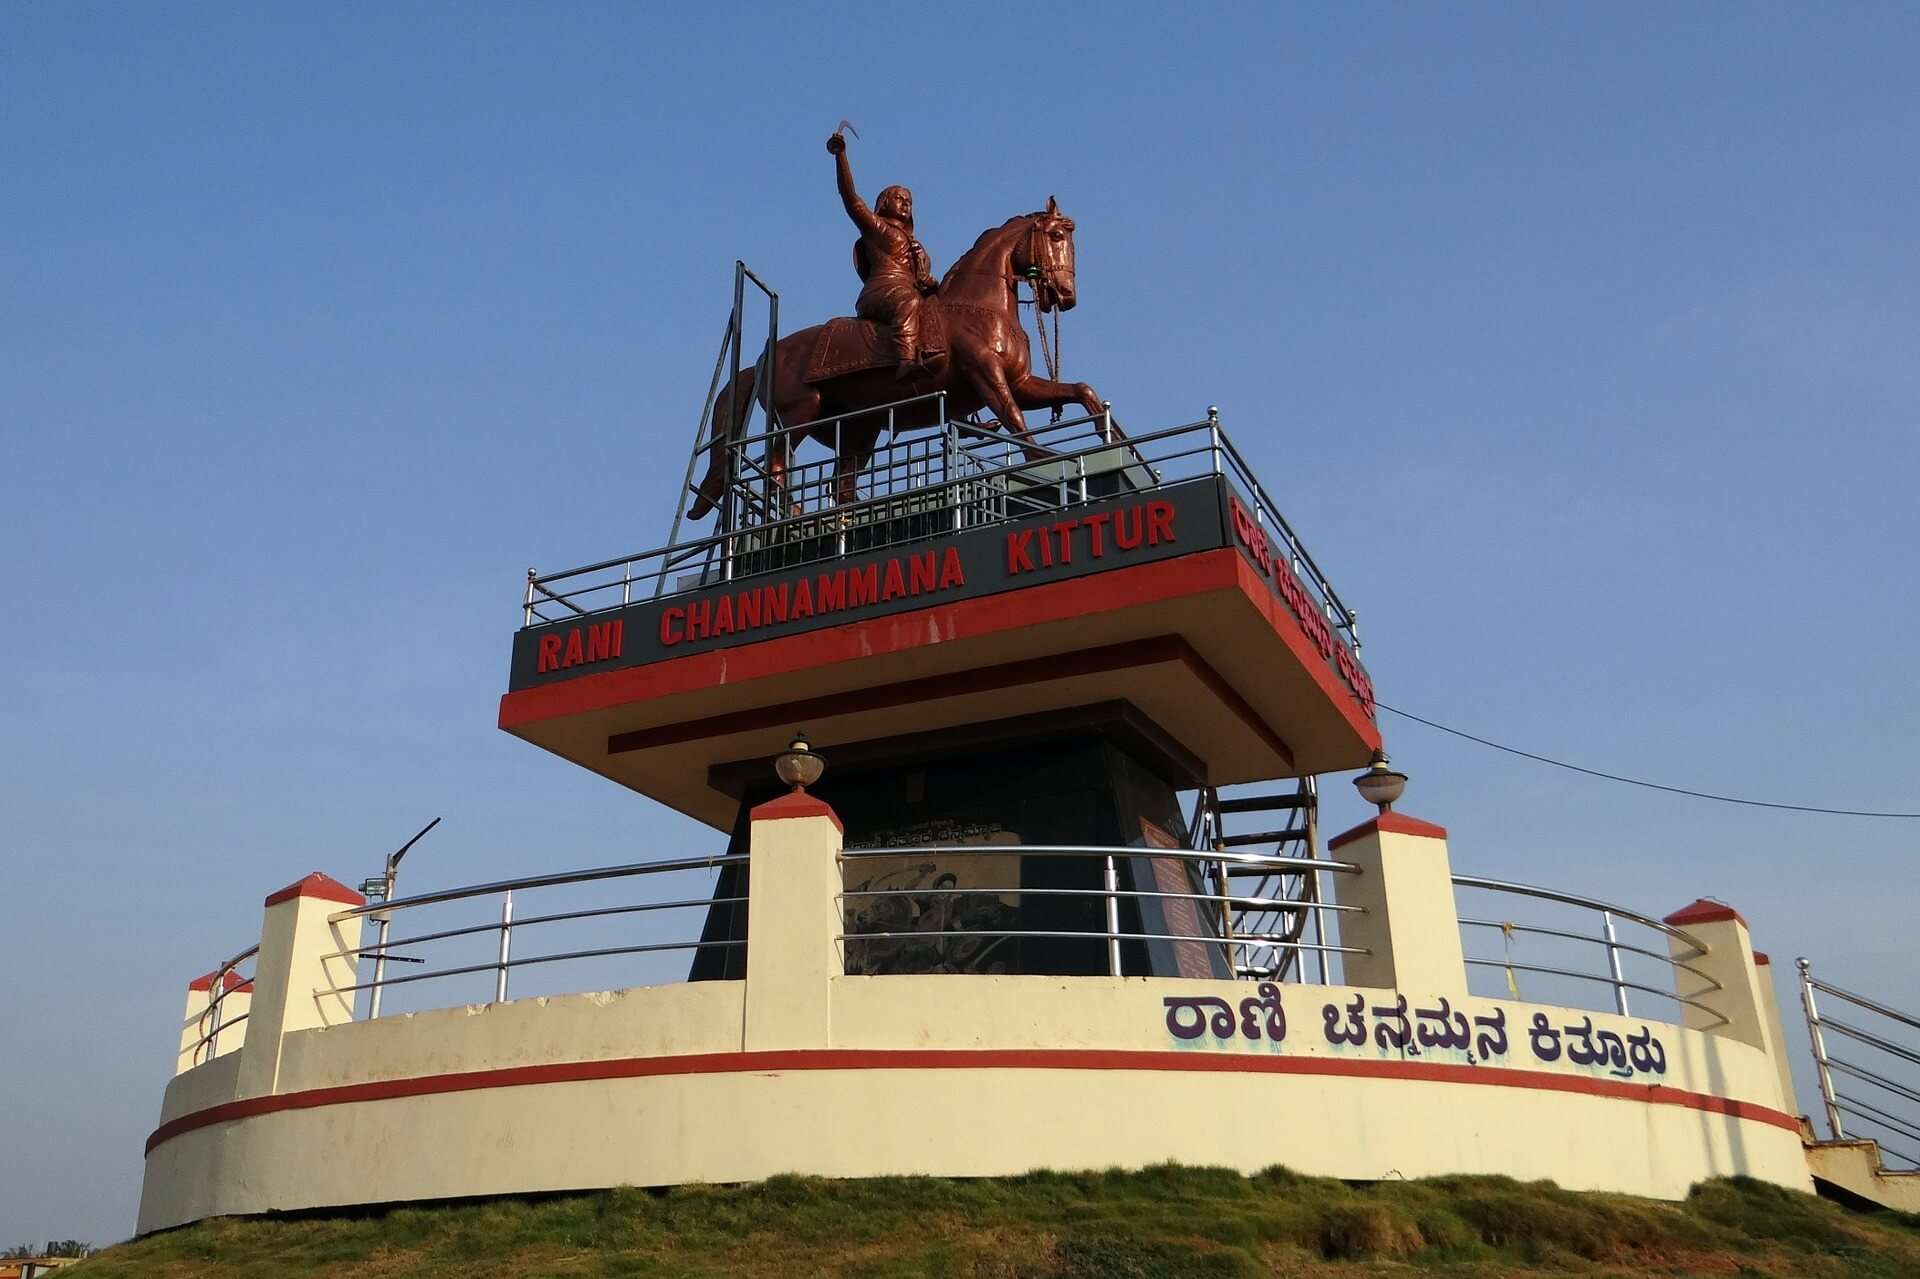 A statue of Rani Channammana Kittur in Belgaum, Karnataka